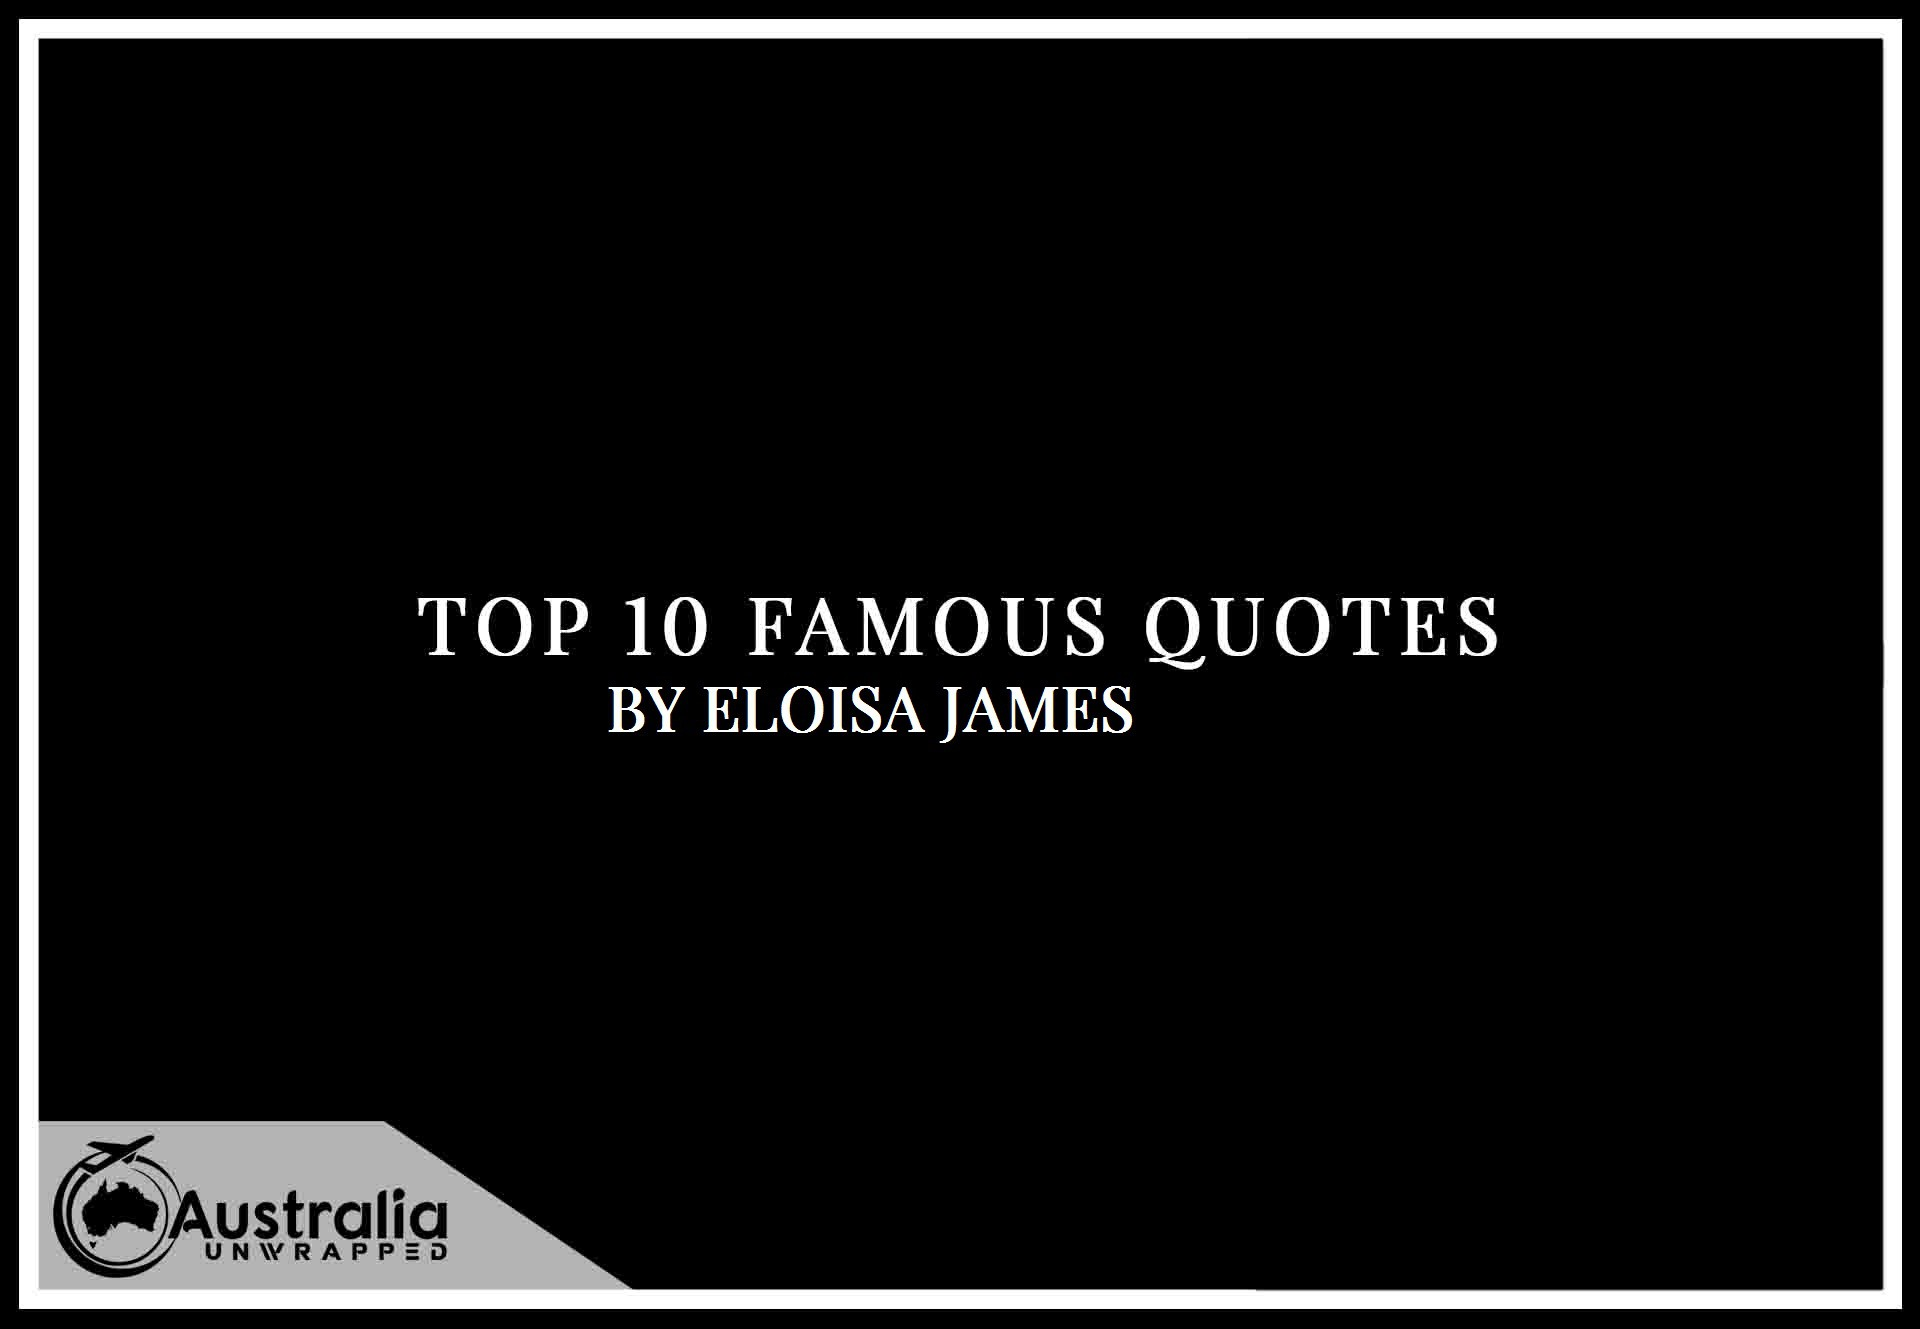 Eloisa James's Top 10 Popular and Famous Quotes